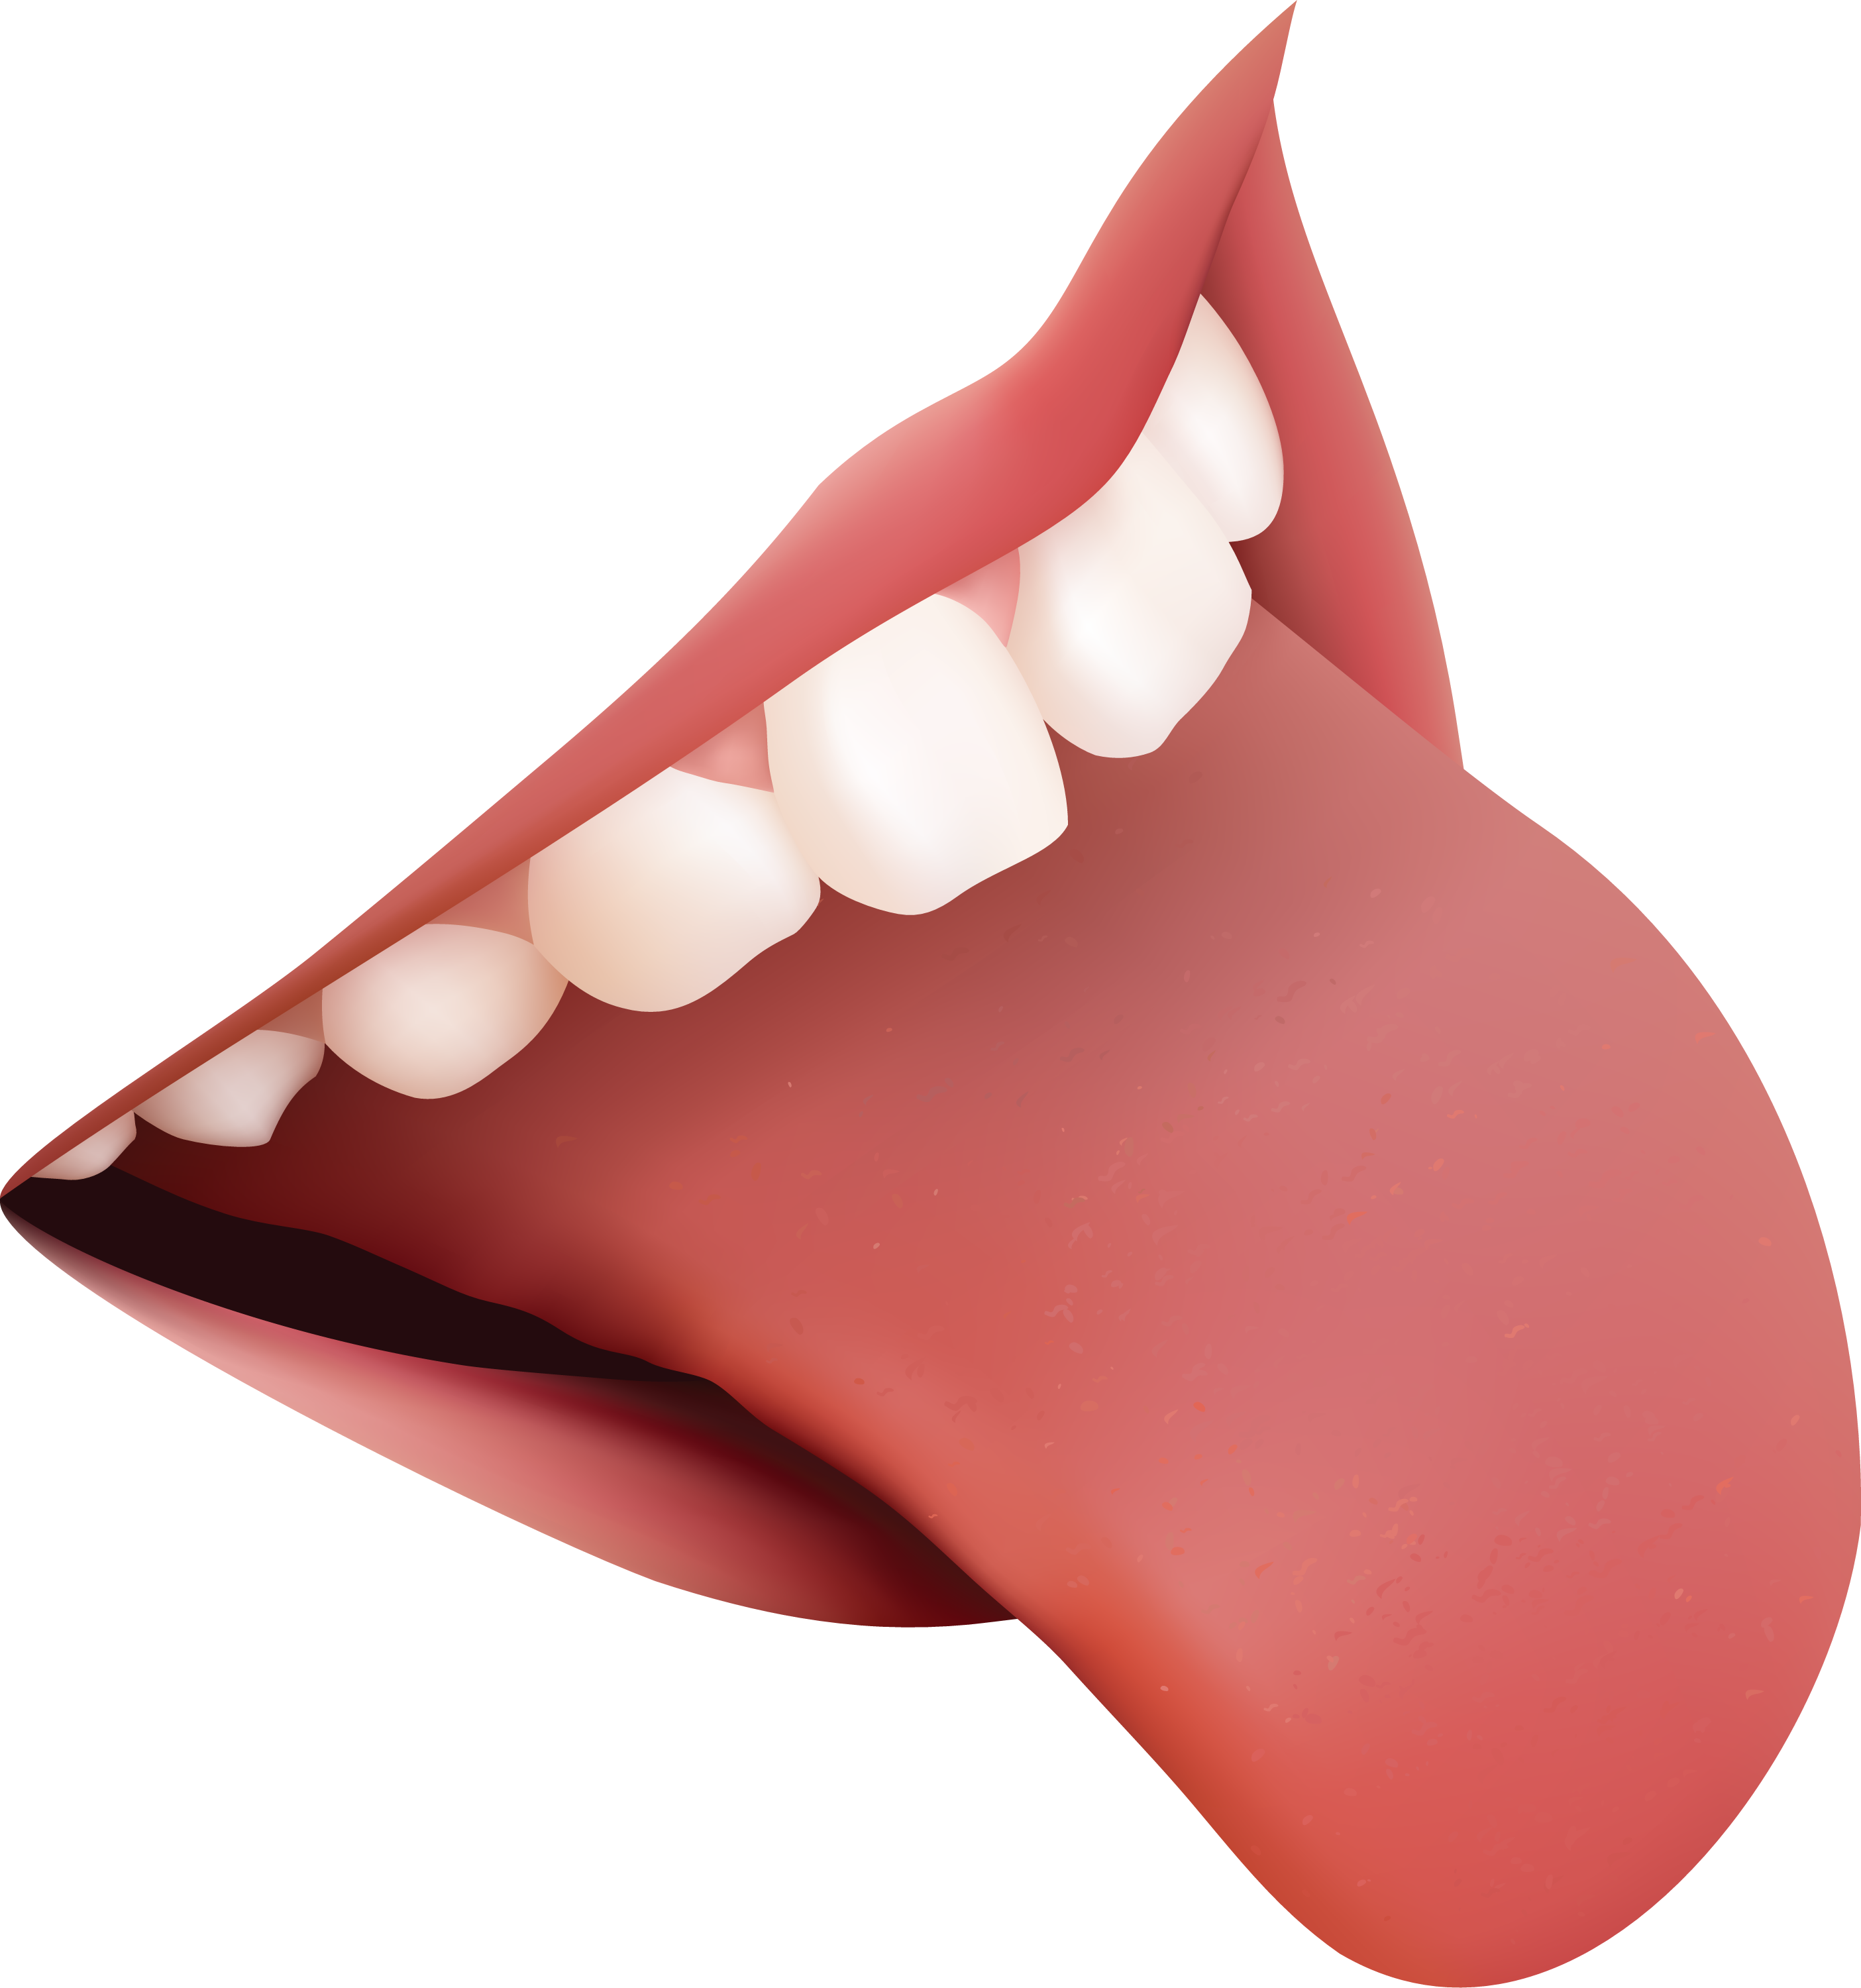 Lips PNG - 23202